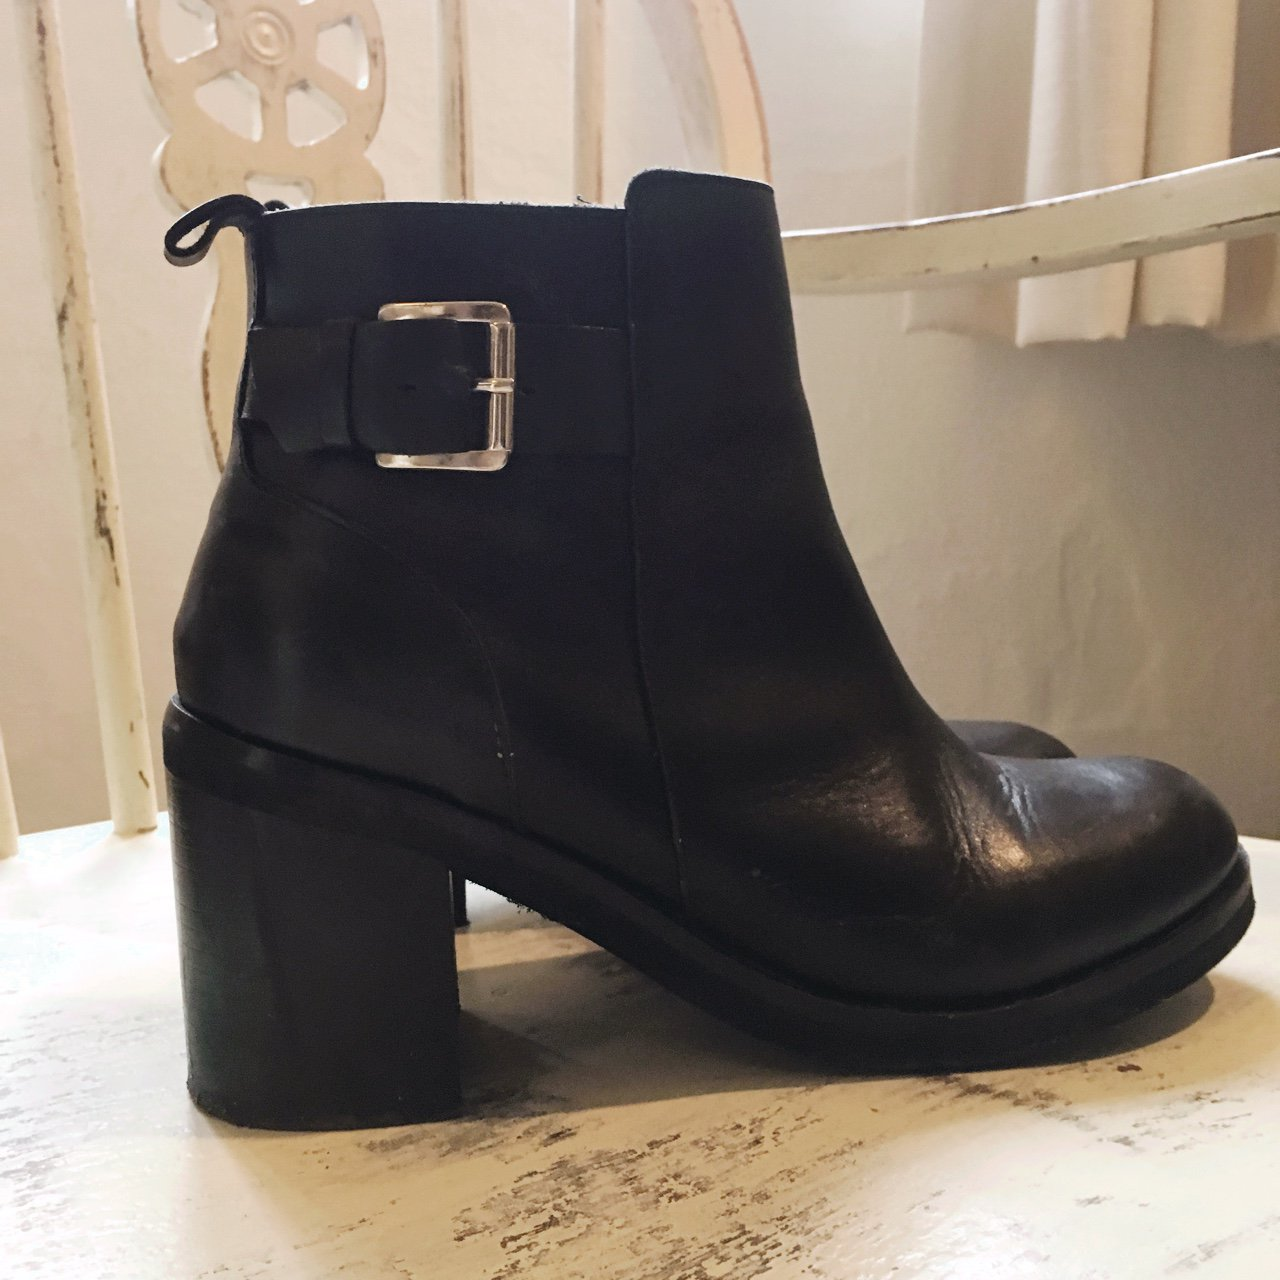 32a5931dfc5 River island black leather heeled